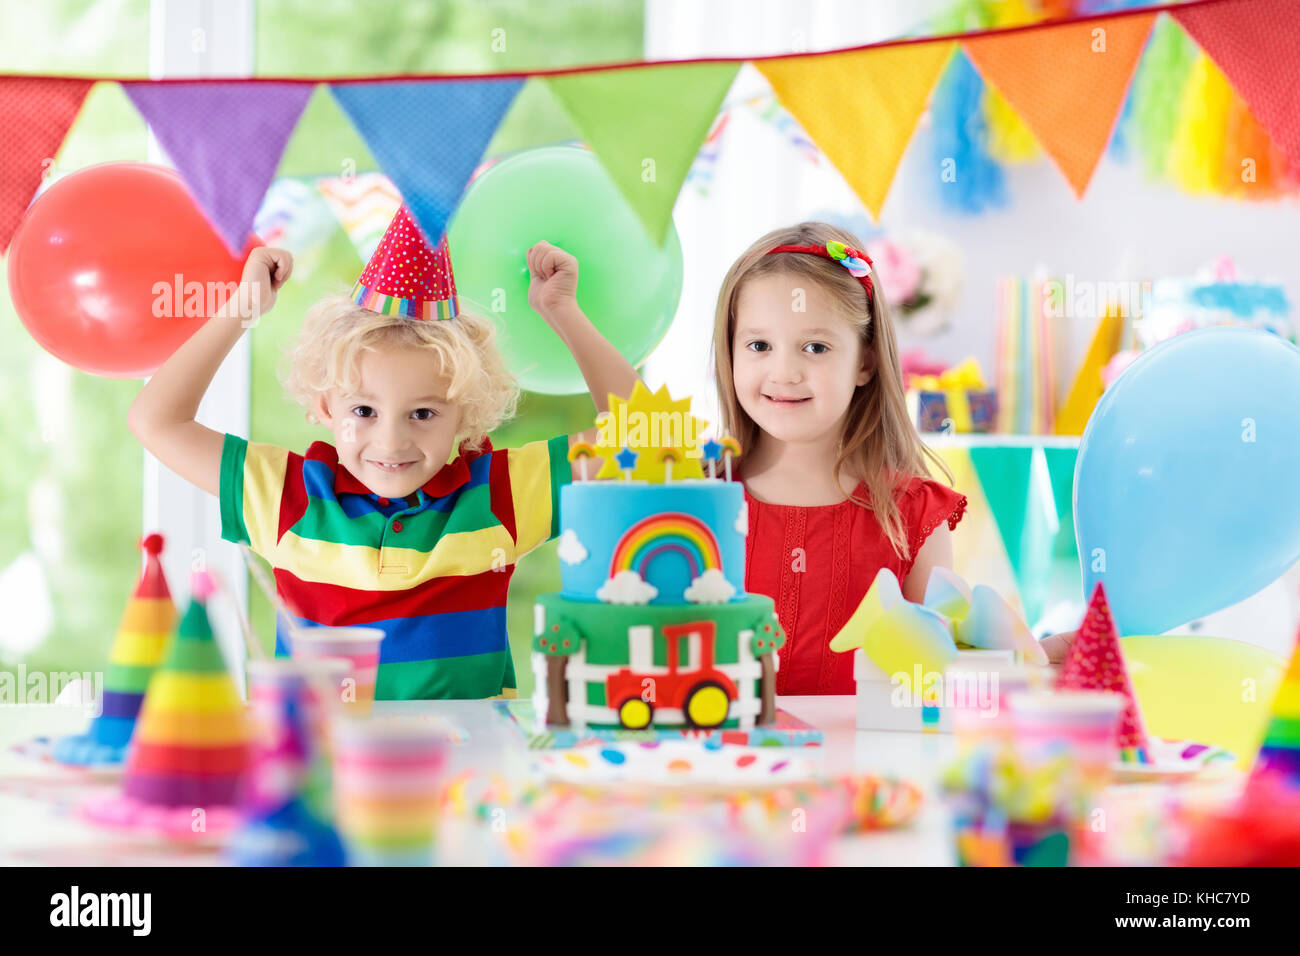 Kids Birthday Party Child Blowing Out Candles On Colorful Cake Decorated Home With Rainbow Flag Banners Balloons Confetti Farm And Transport Them